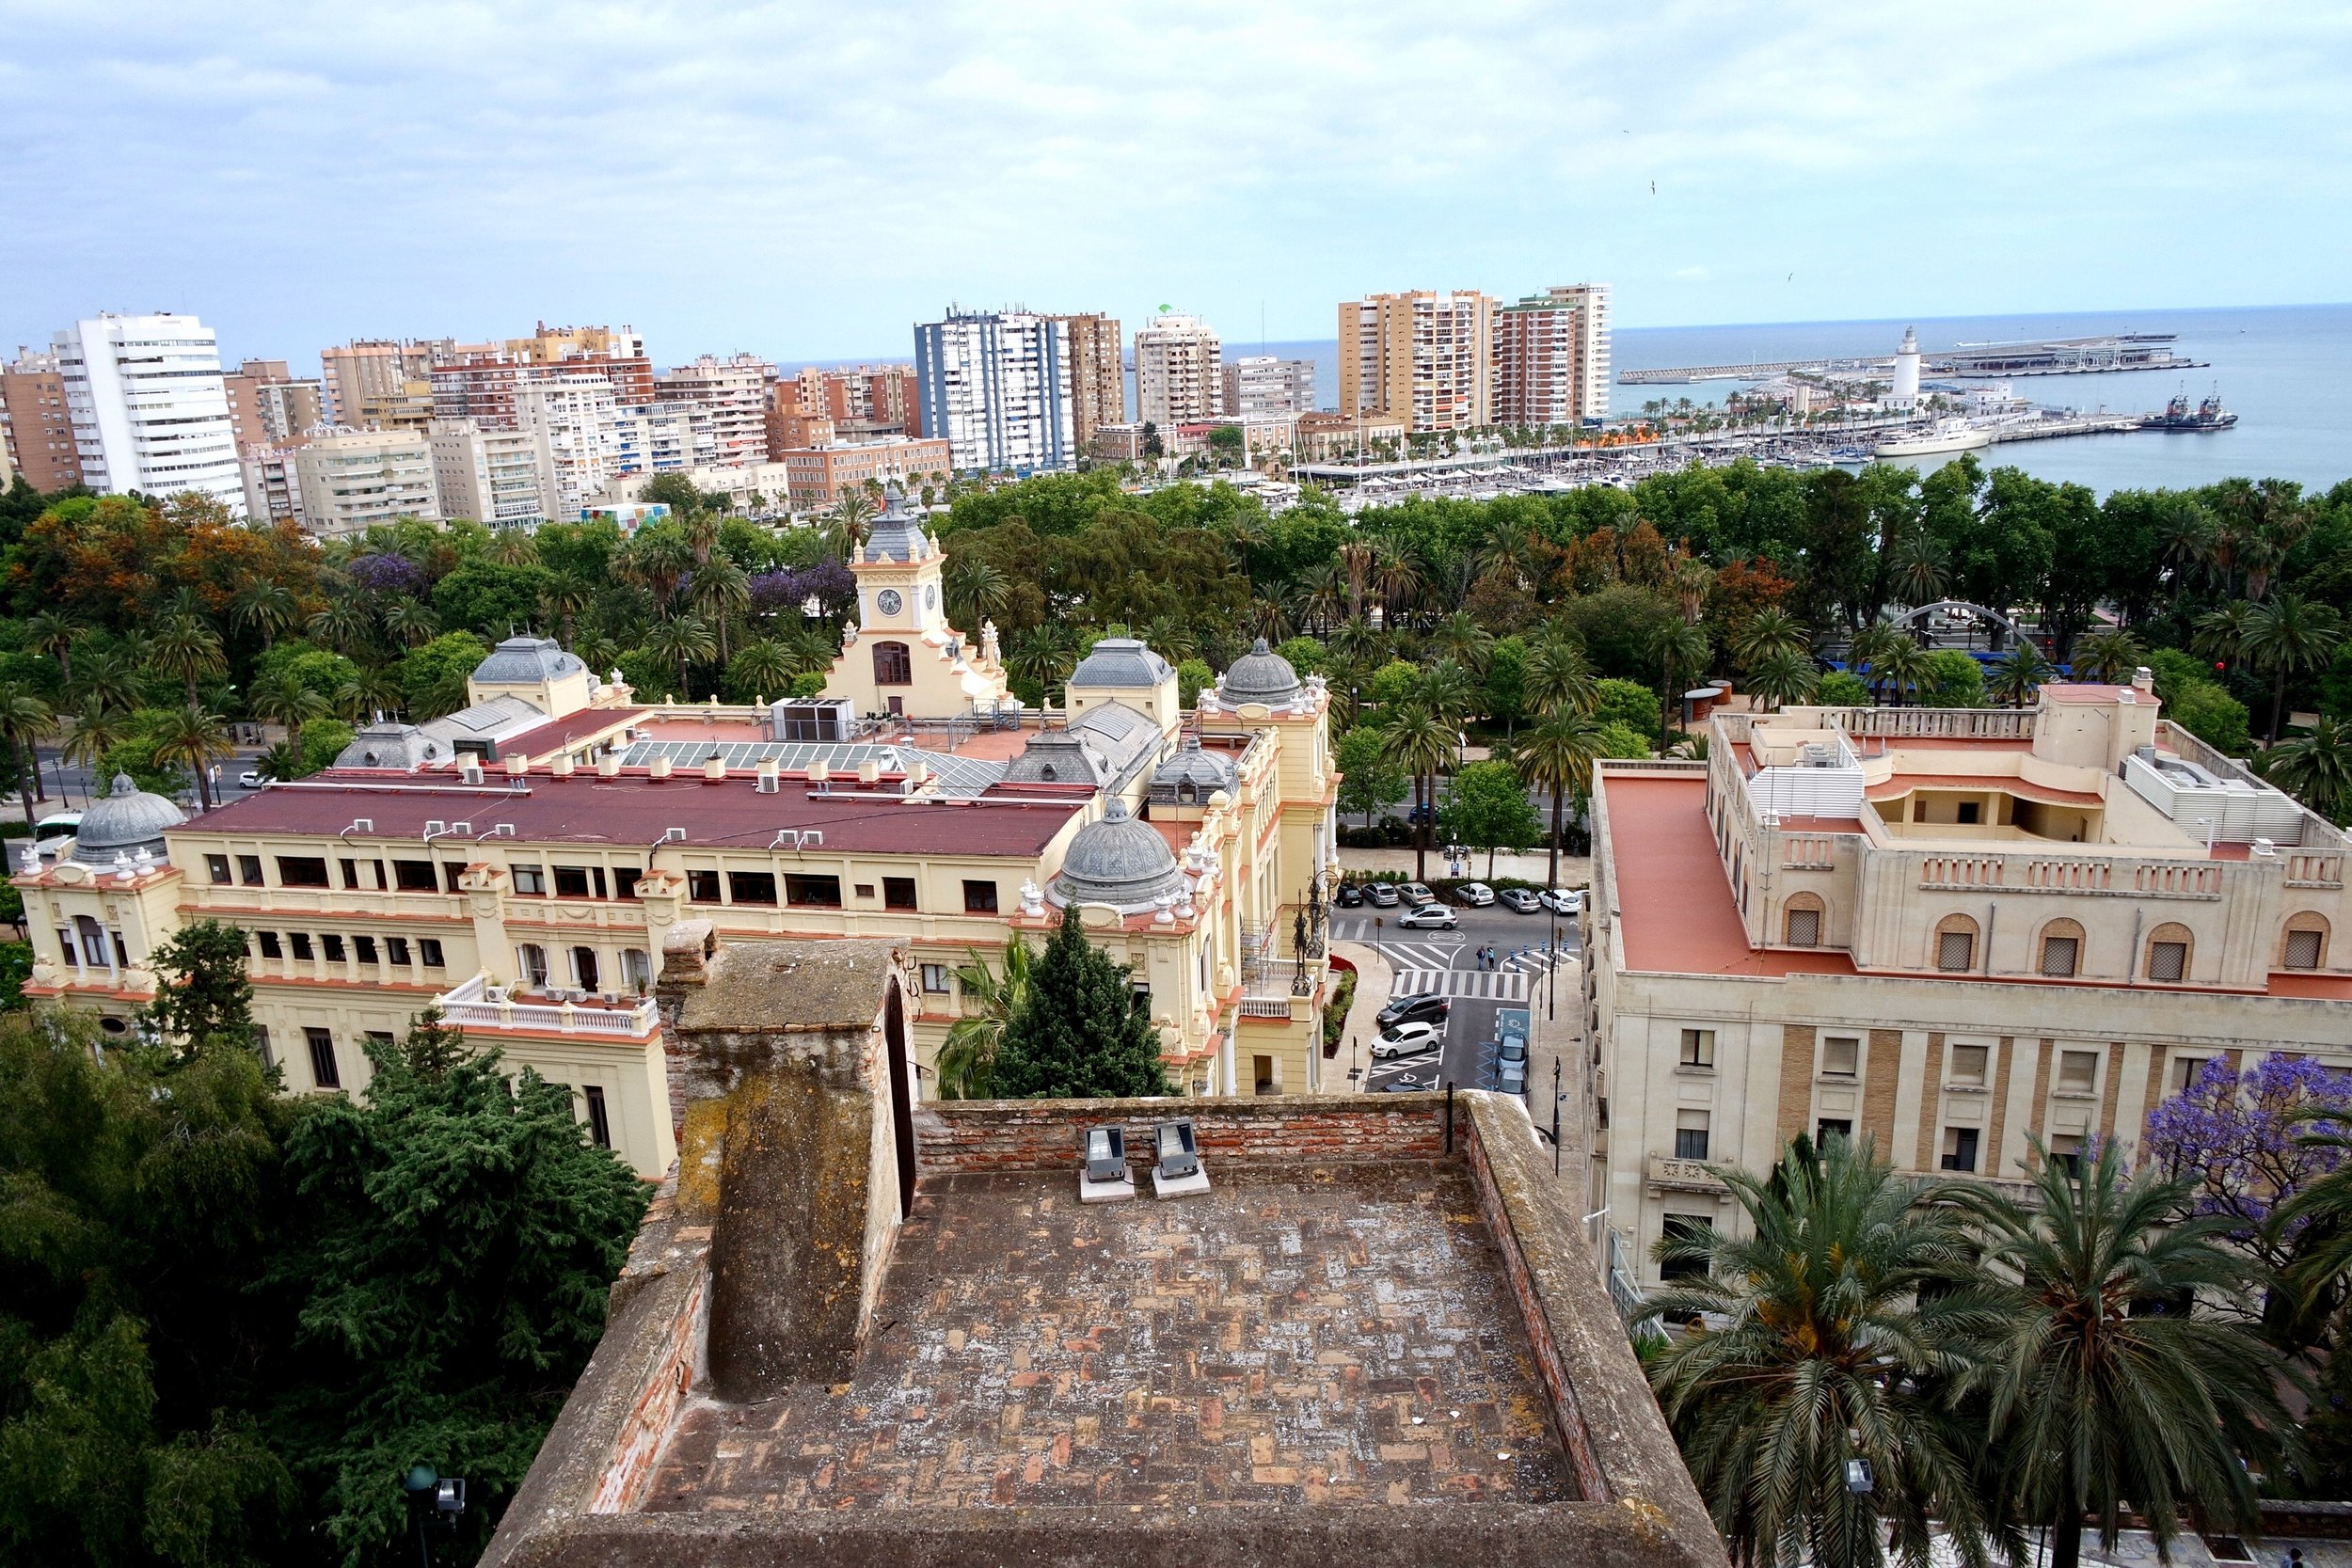 The Alcazaba offers a picture-perfect view of the pastel-colored city and port below